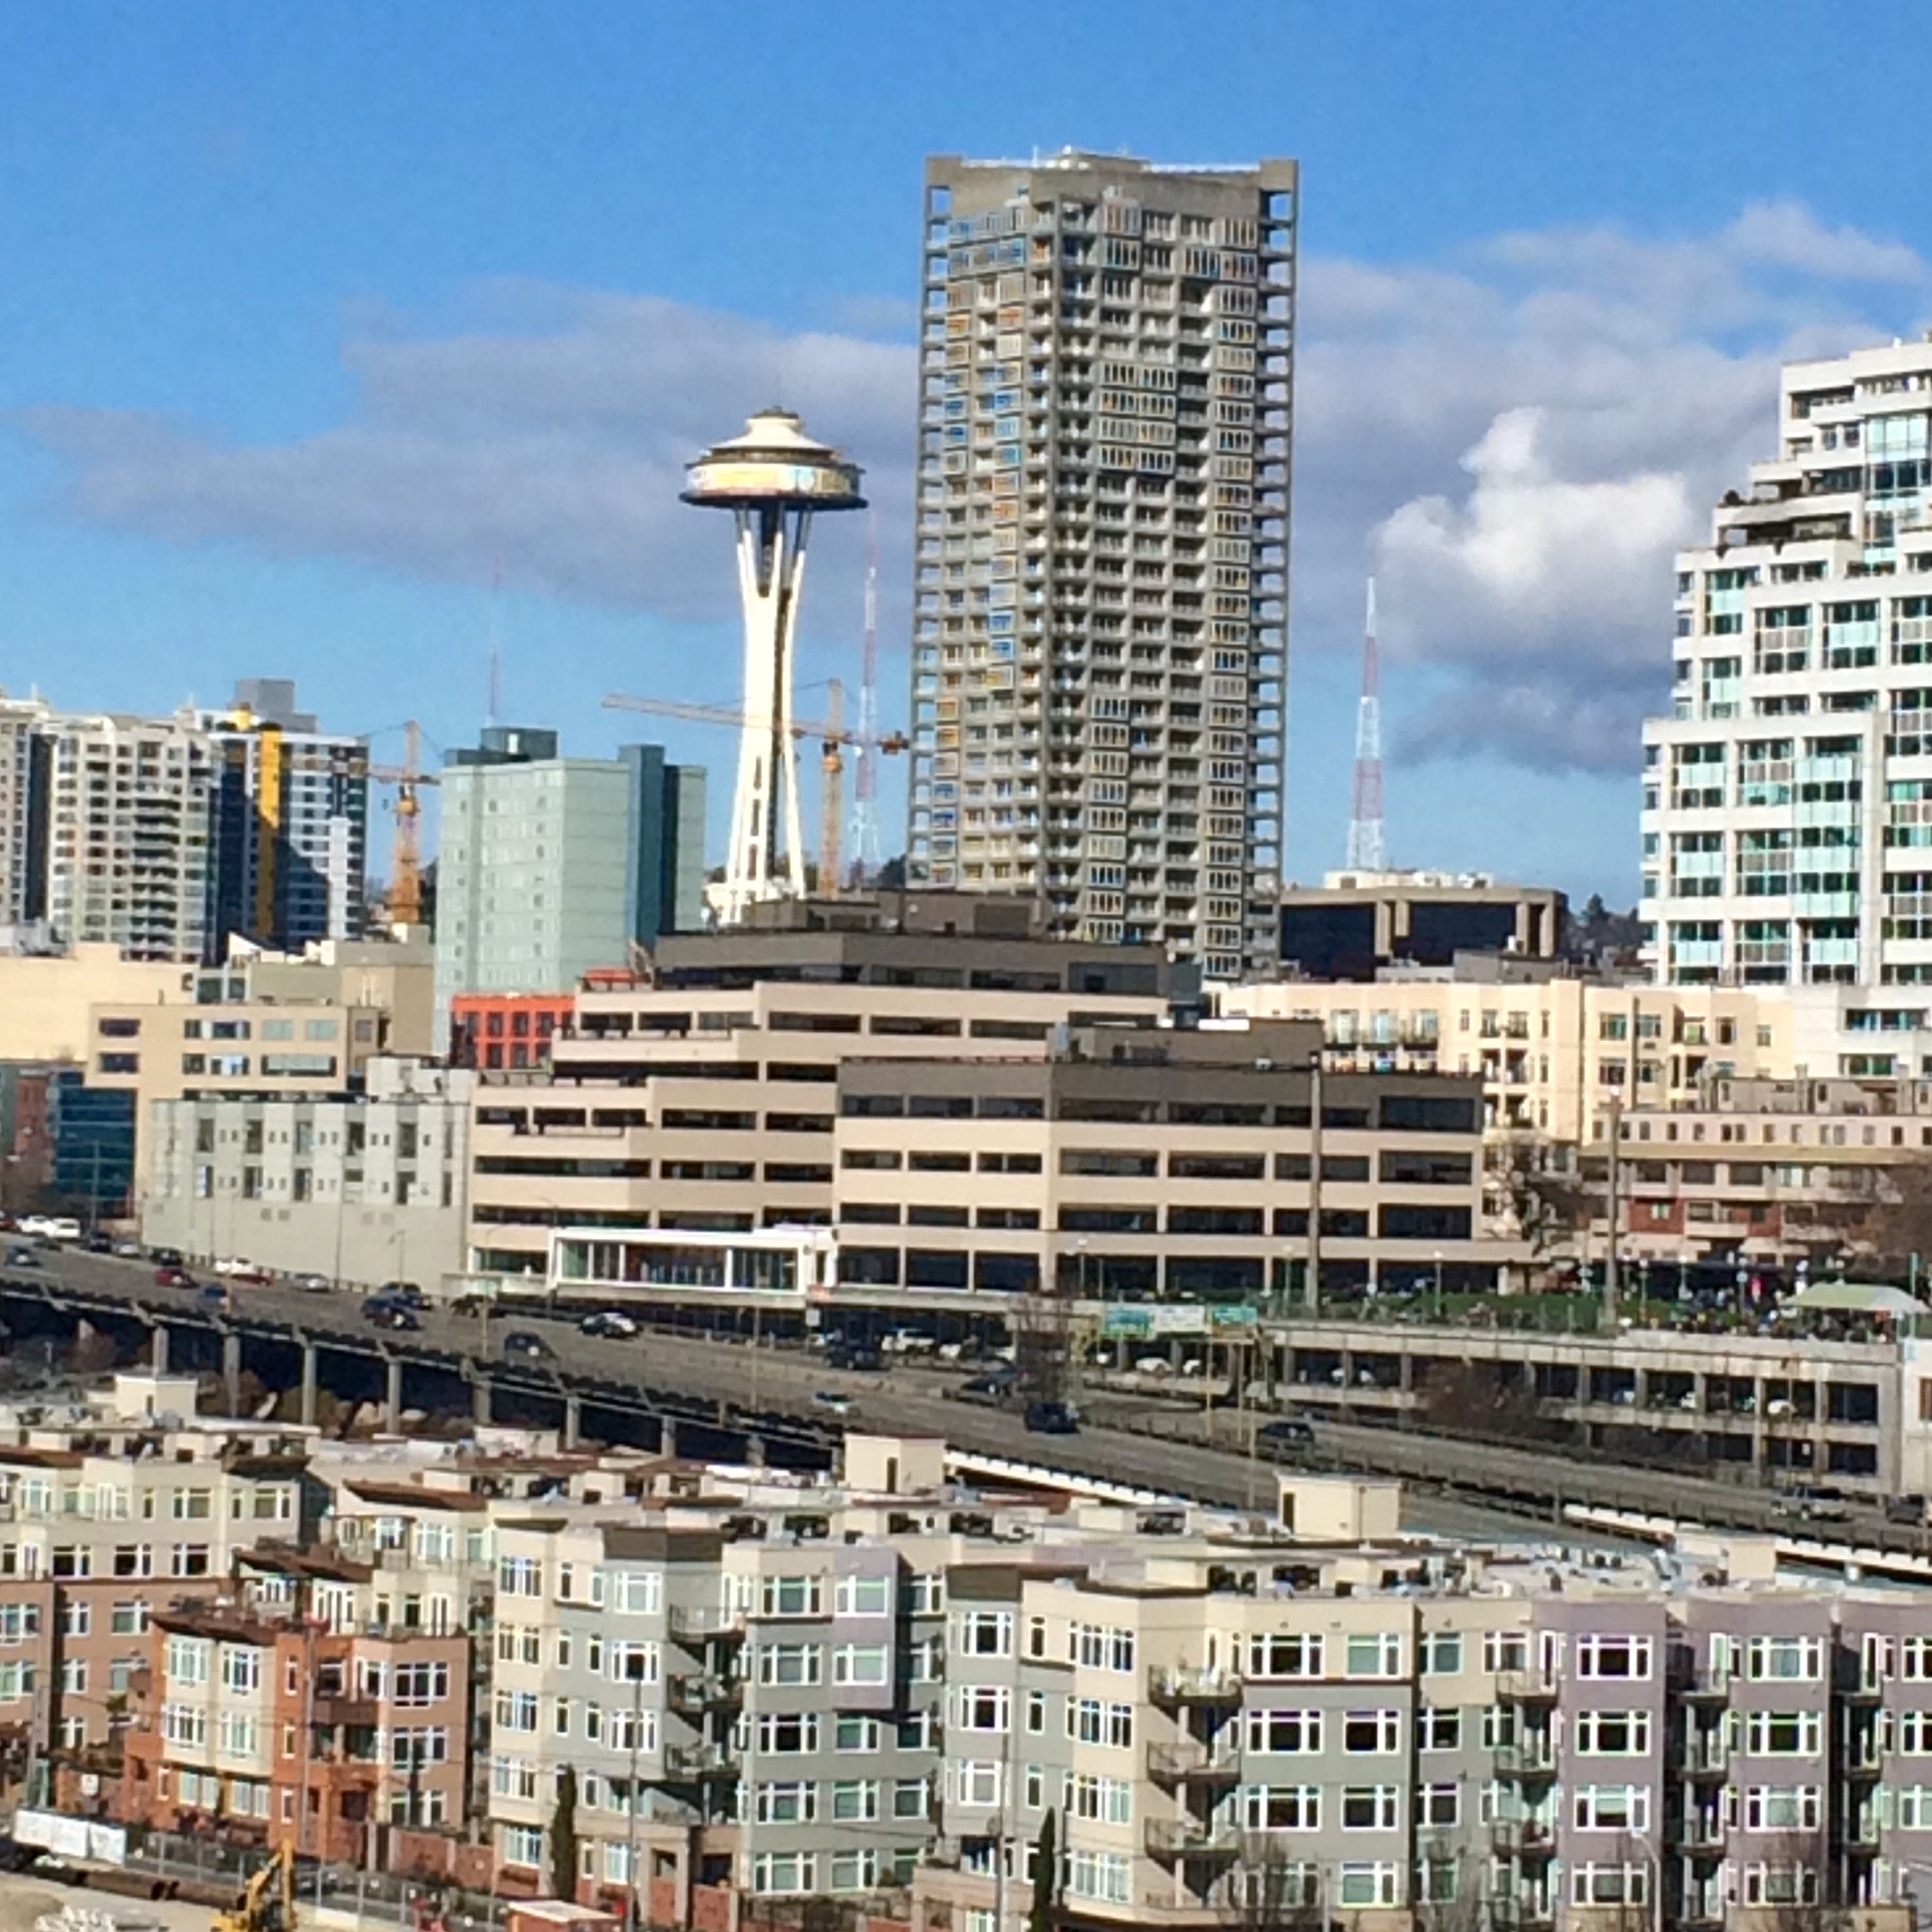 Day 3. View from the Great Seattle Sky Wheel.